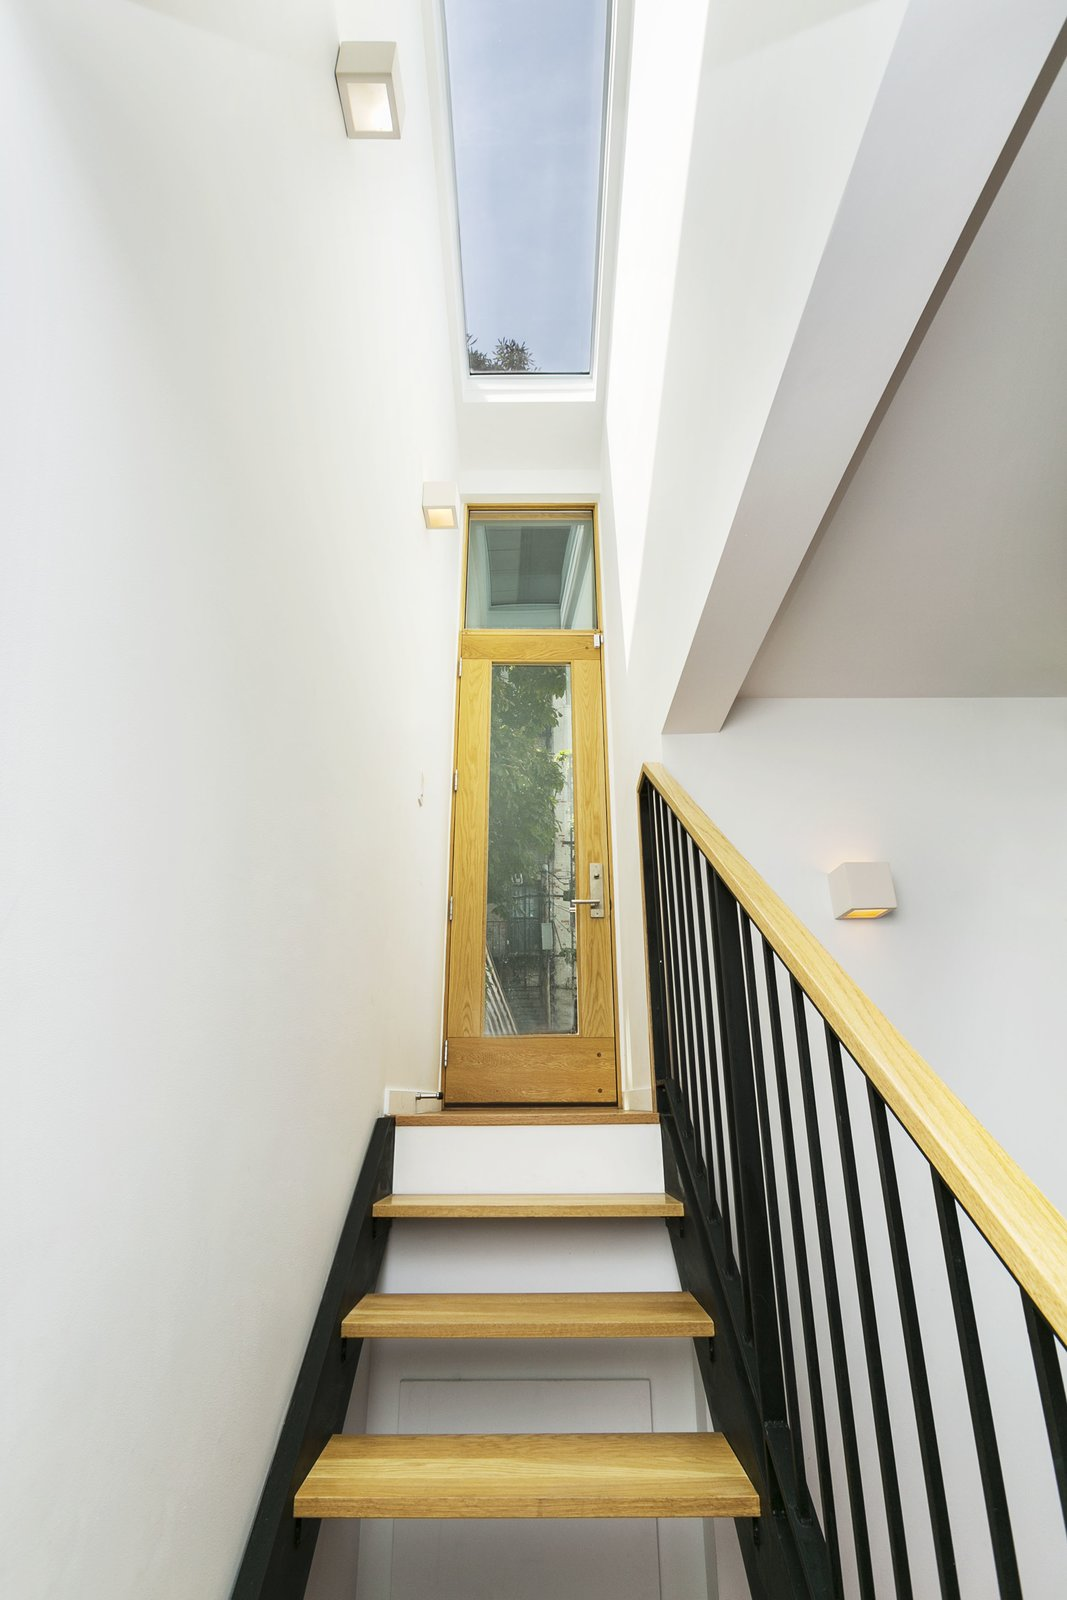 Staircase, Wood Tread, Metal Railing, Metal Tread, and Wood Railing Exit from basement apartment to backyard.   Sunset Park Row House